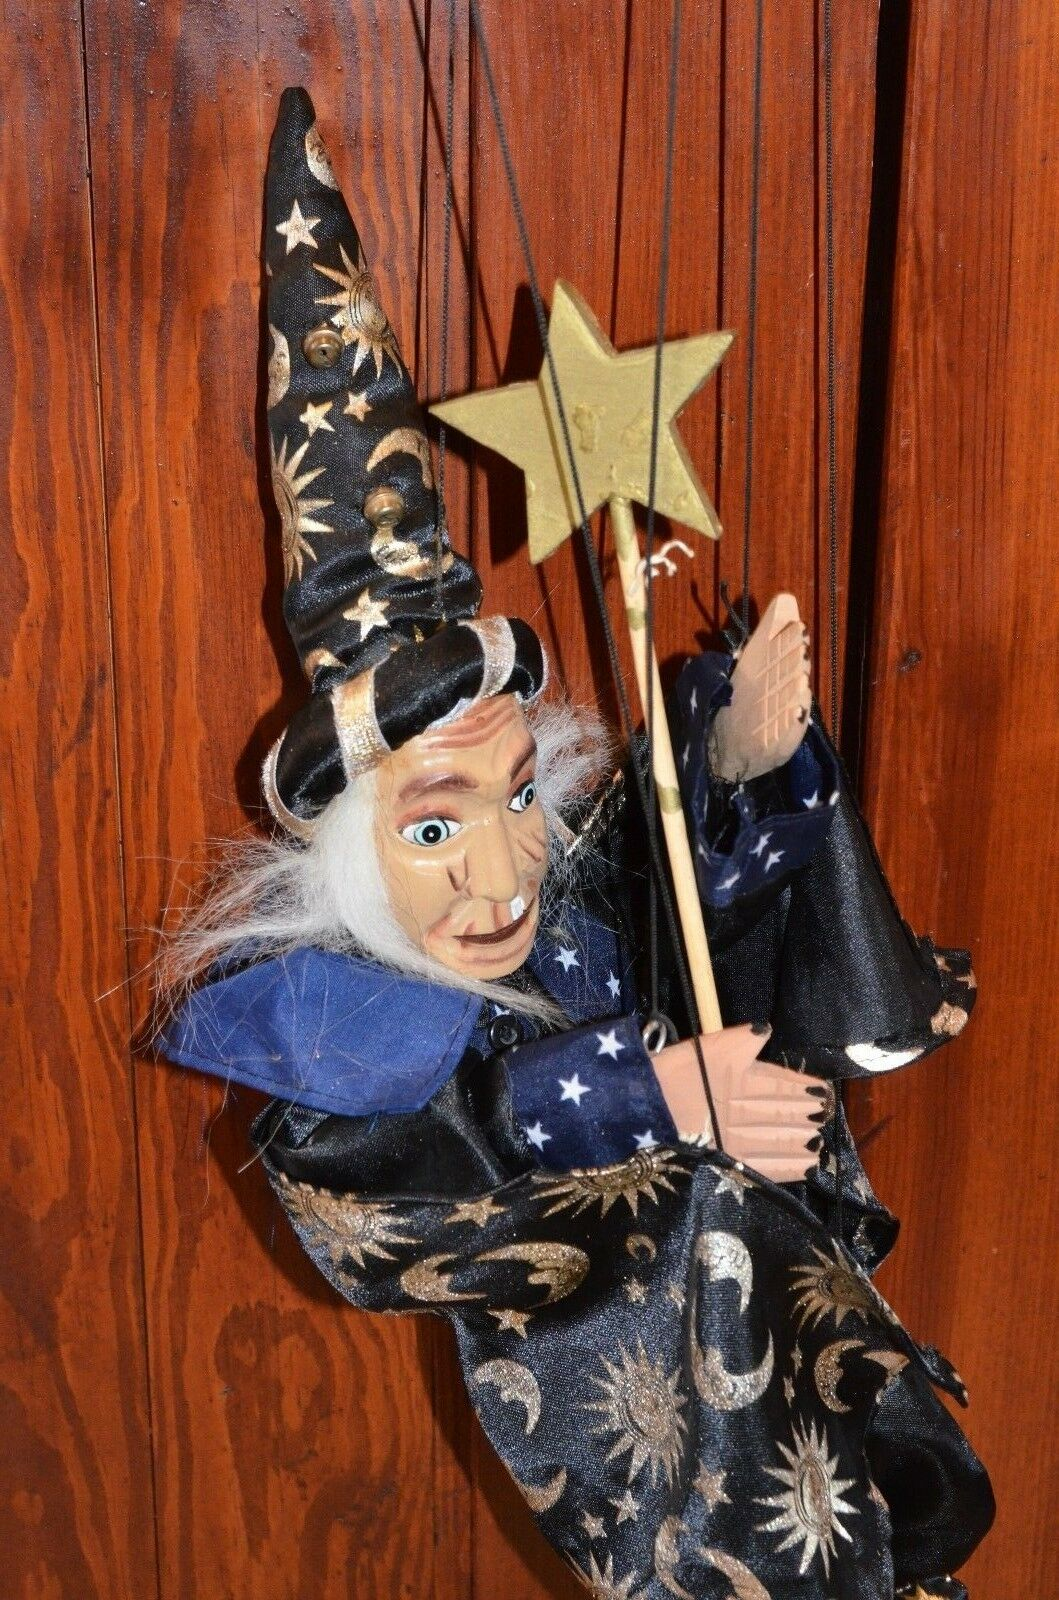 Vintage Wooden WIZARD Sorcerer Marionette With Cape and Star Wand